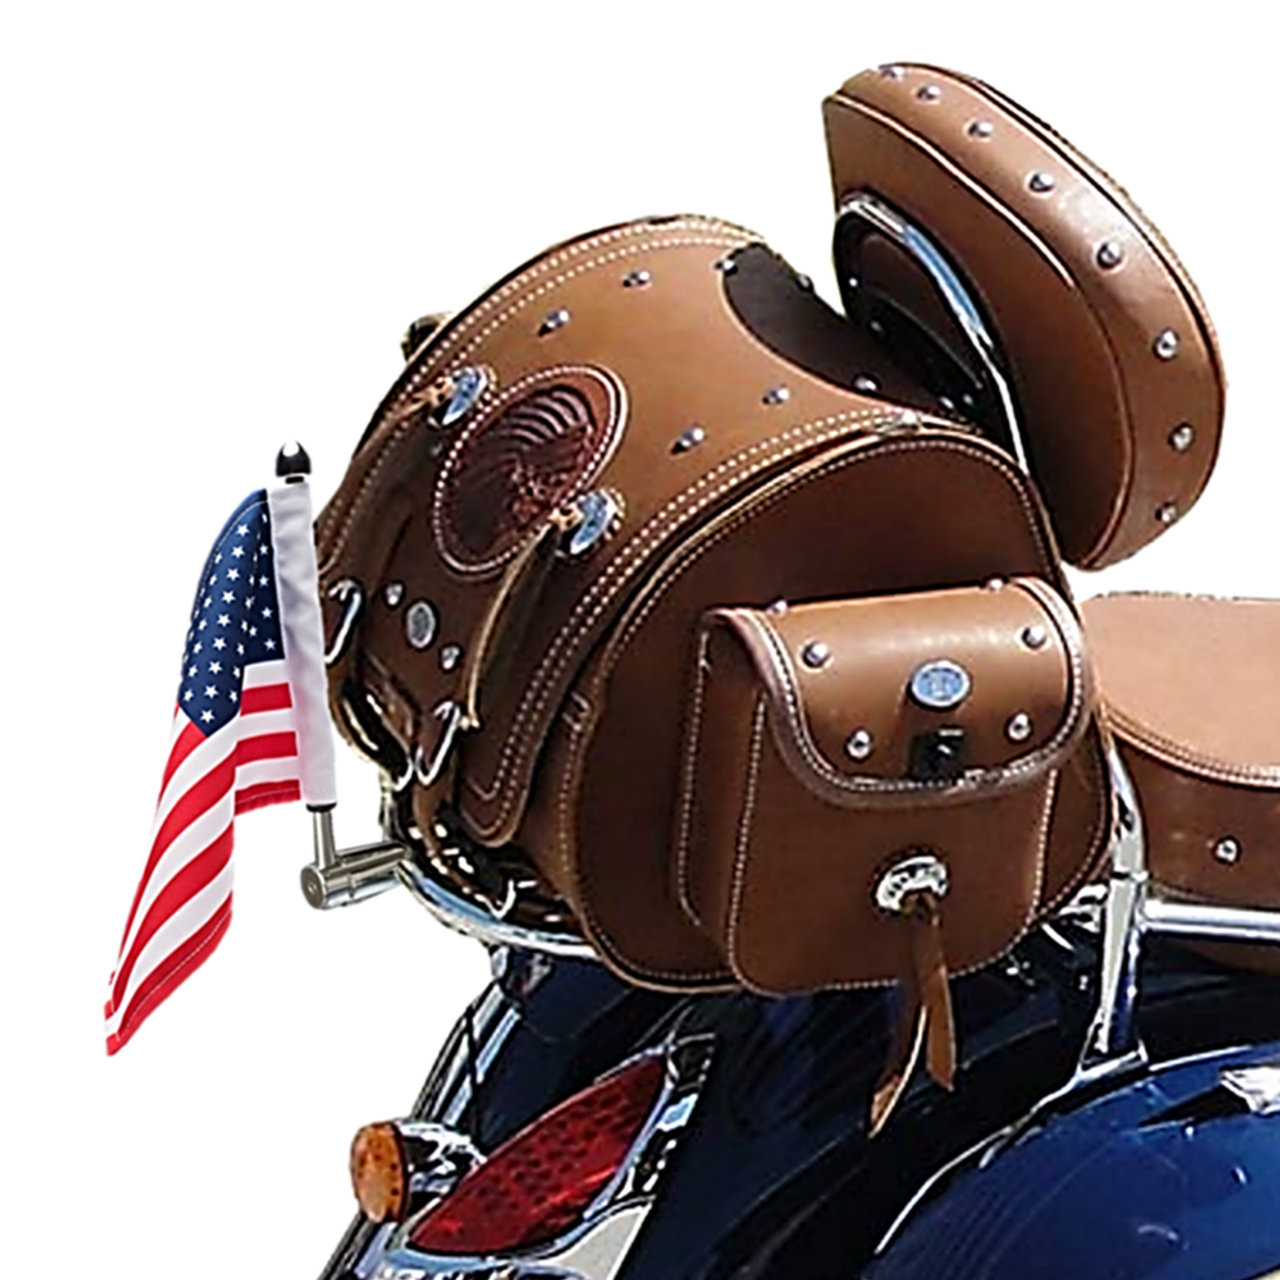 ".765"" Fixed, extended horizontal mount with 9"" pole, standard cone topper and 6""x9"" USA flag on quick detach Indian Chieftain sissy bar luggage rack (shown in polished stainless; rack not included)"